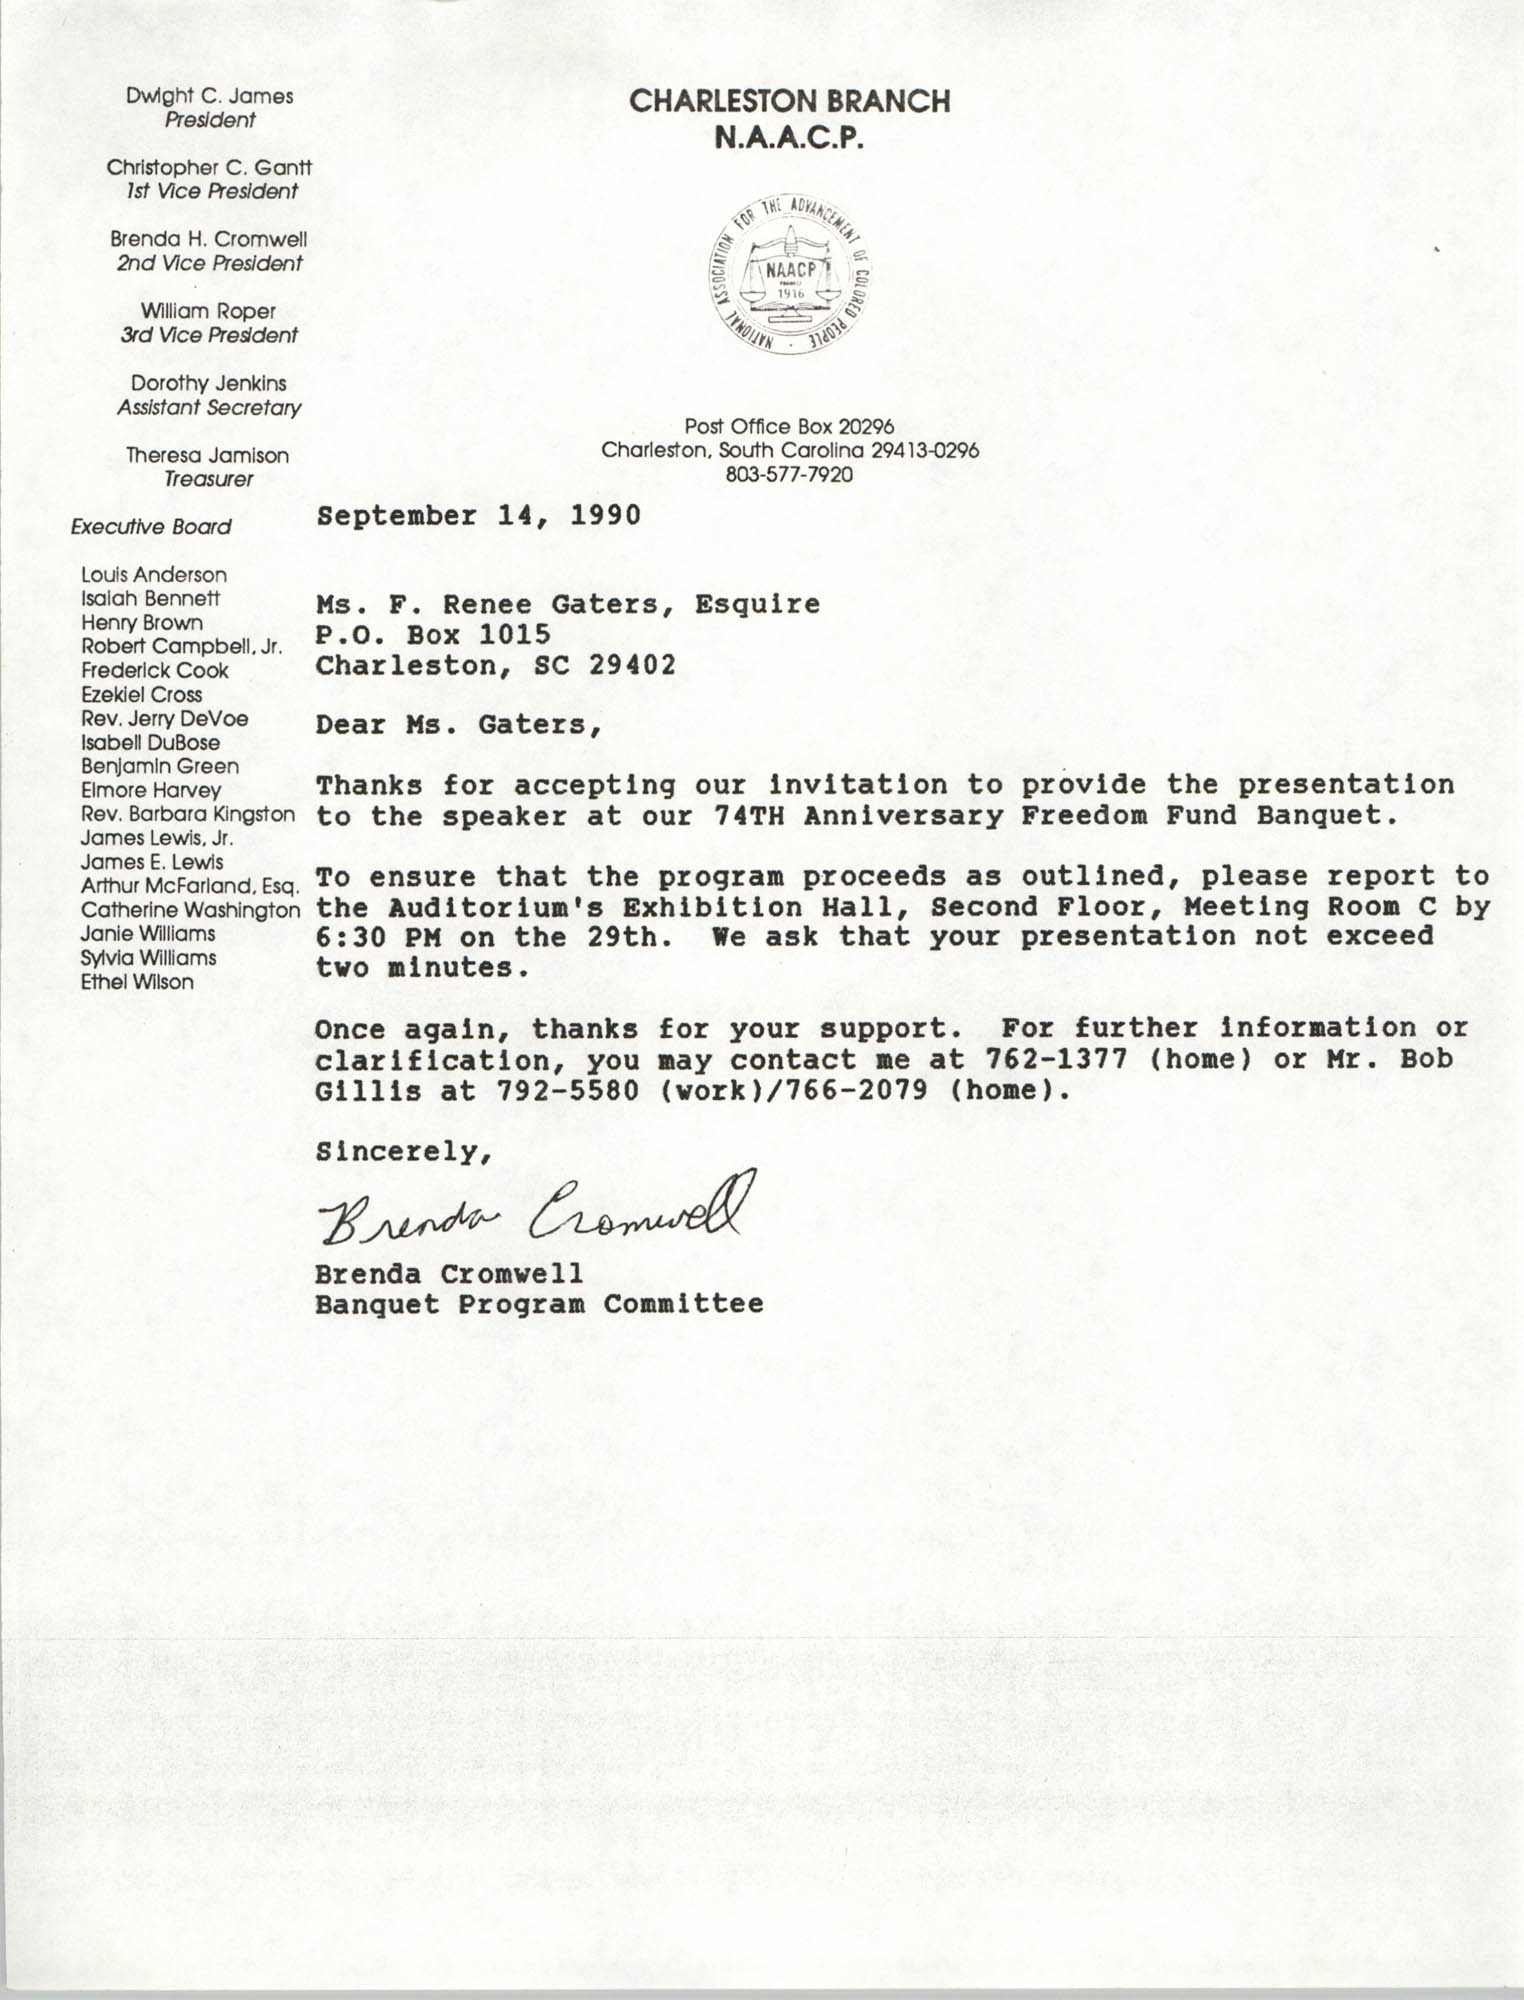 Letter from Brenda Cromwell to F. Renee Gaters, September 14, 1990